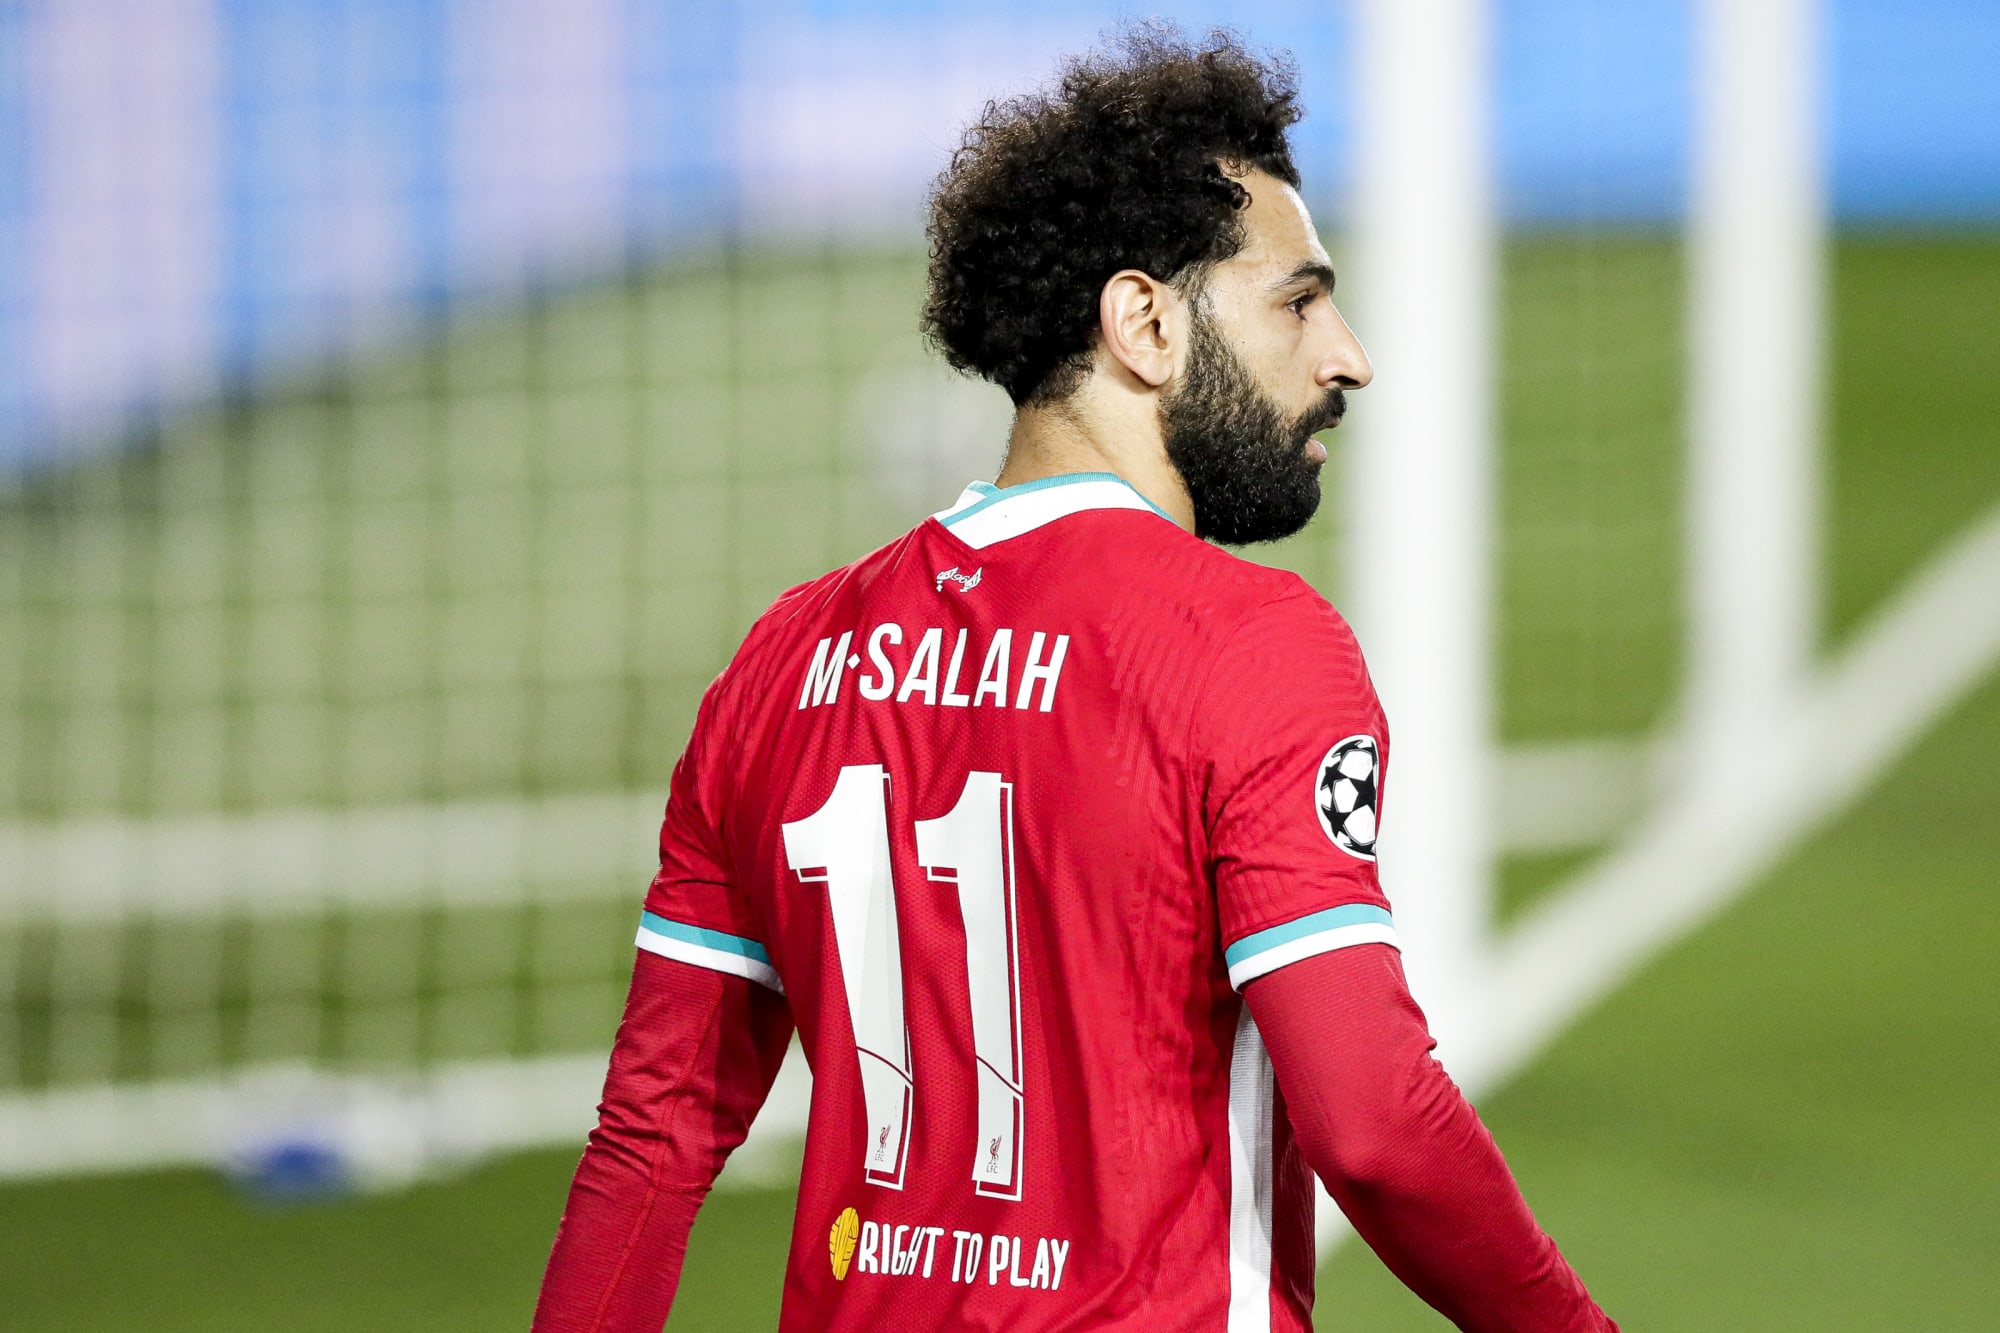 Liverpool: Could Mohamed Salah land at Paris next season?